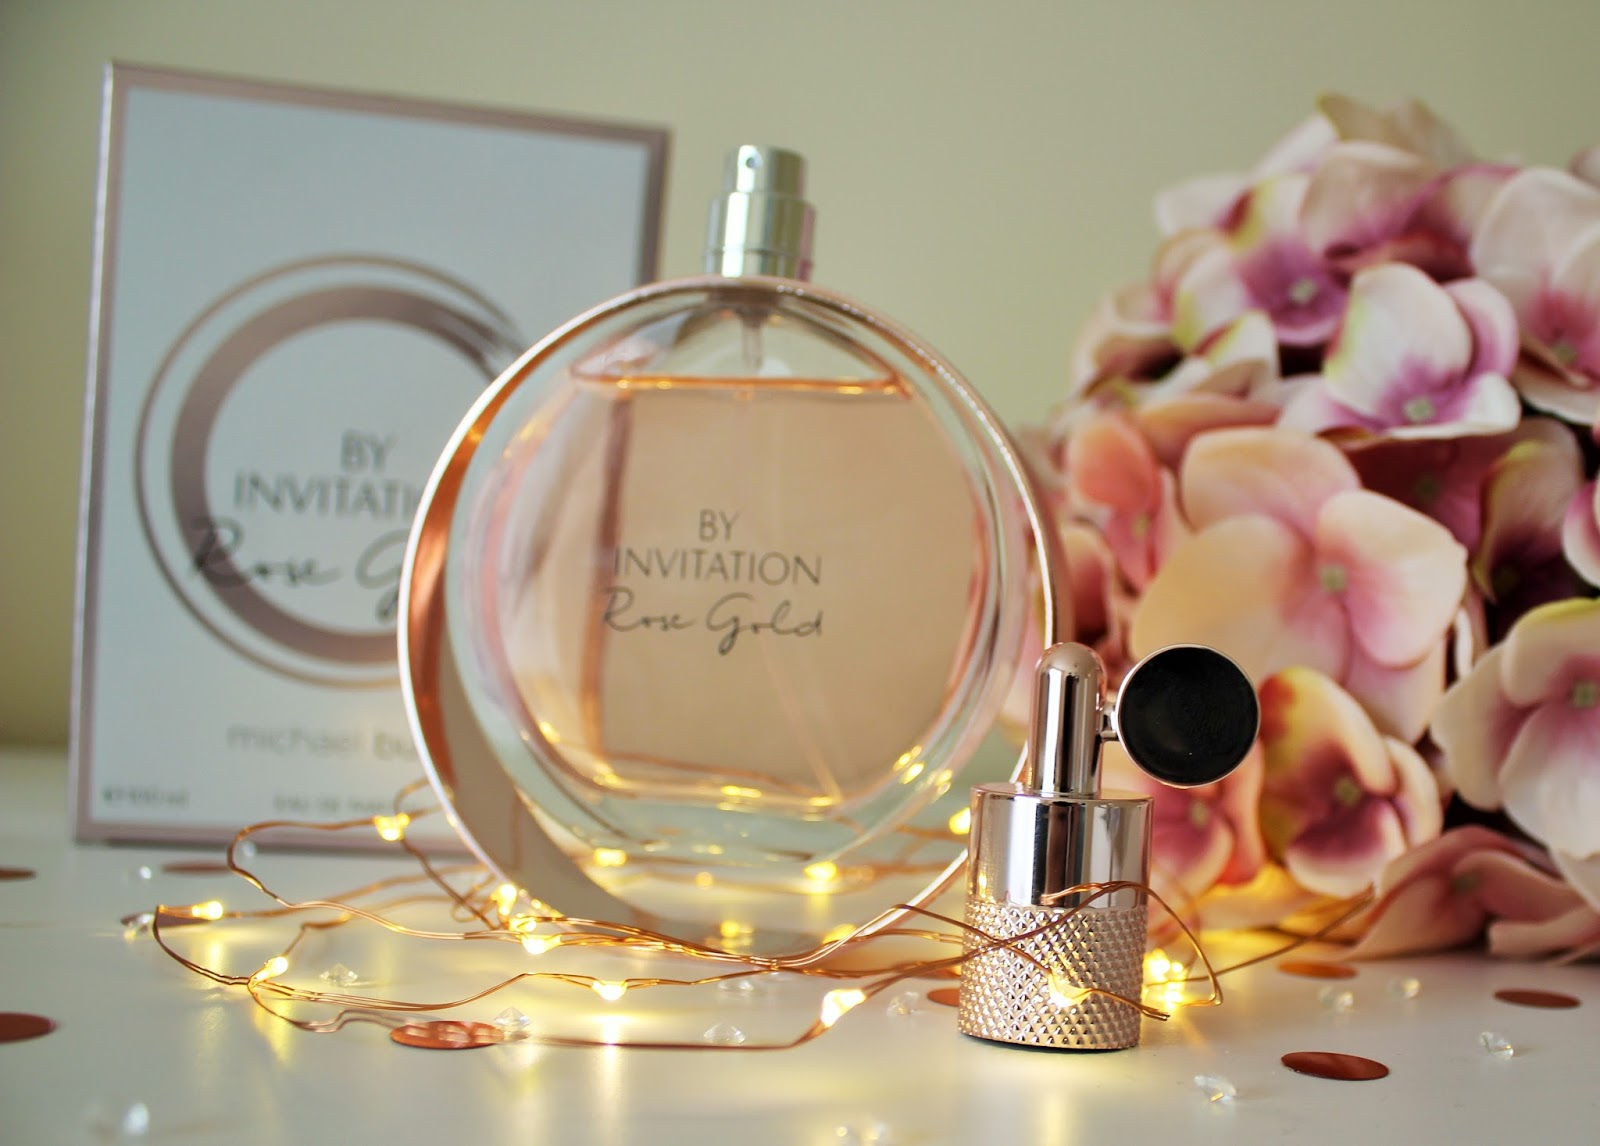 Michael Buble By Invitation Rose Gold Perfume Review - 6